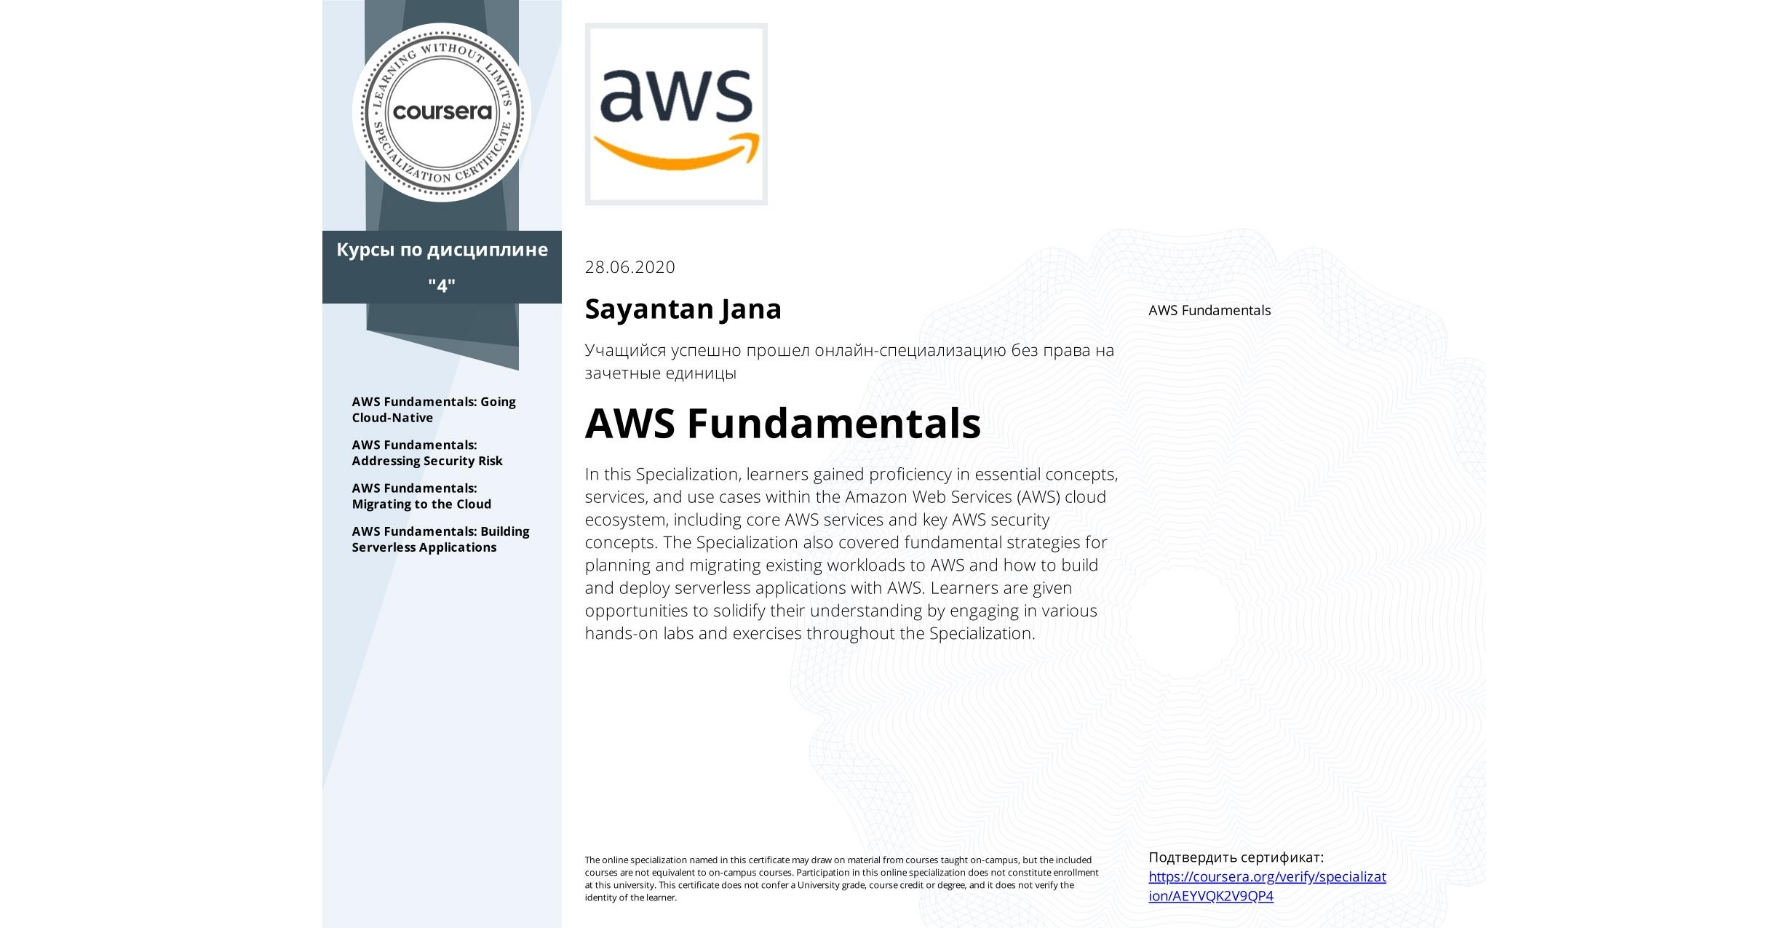 View certificate for Sayantan Jana, AWS Fundamentals, offered through Coursera. In this Specialization, learners gained proficiency in essential concepts, services, and use cases within the Amazon Web Services (AWS) cloud ecosystem, including core AWS services and key AWS security concepts. The Specialization also covered fundamental strategies for planning and migrating existing workloads to AWS and how to build and deploy serverless applications with AWS. Learners are given opportunities to solidify their understanding by engaging in various hands-on labs and exercises throughout the Specialization.